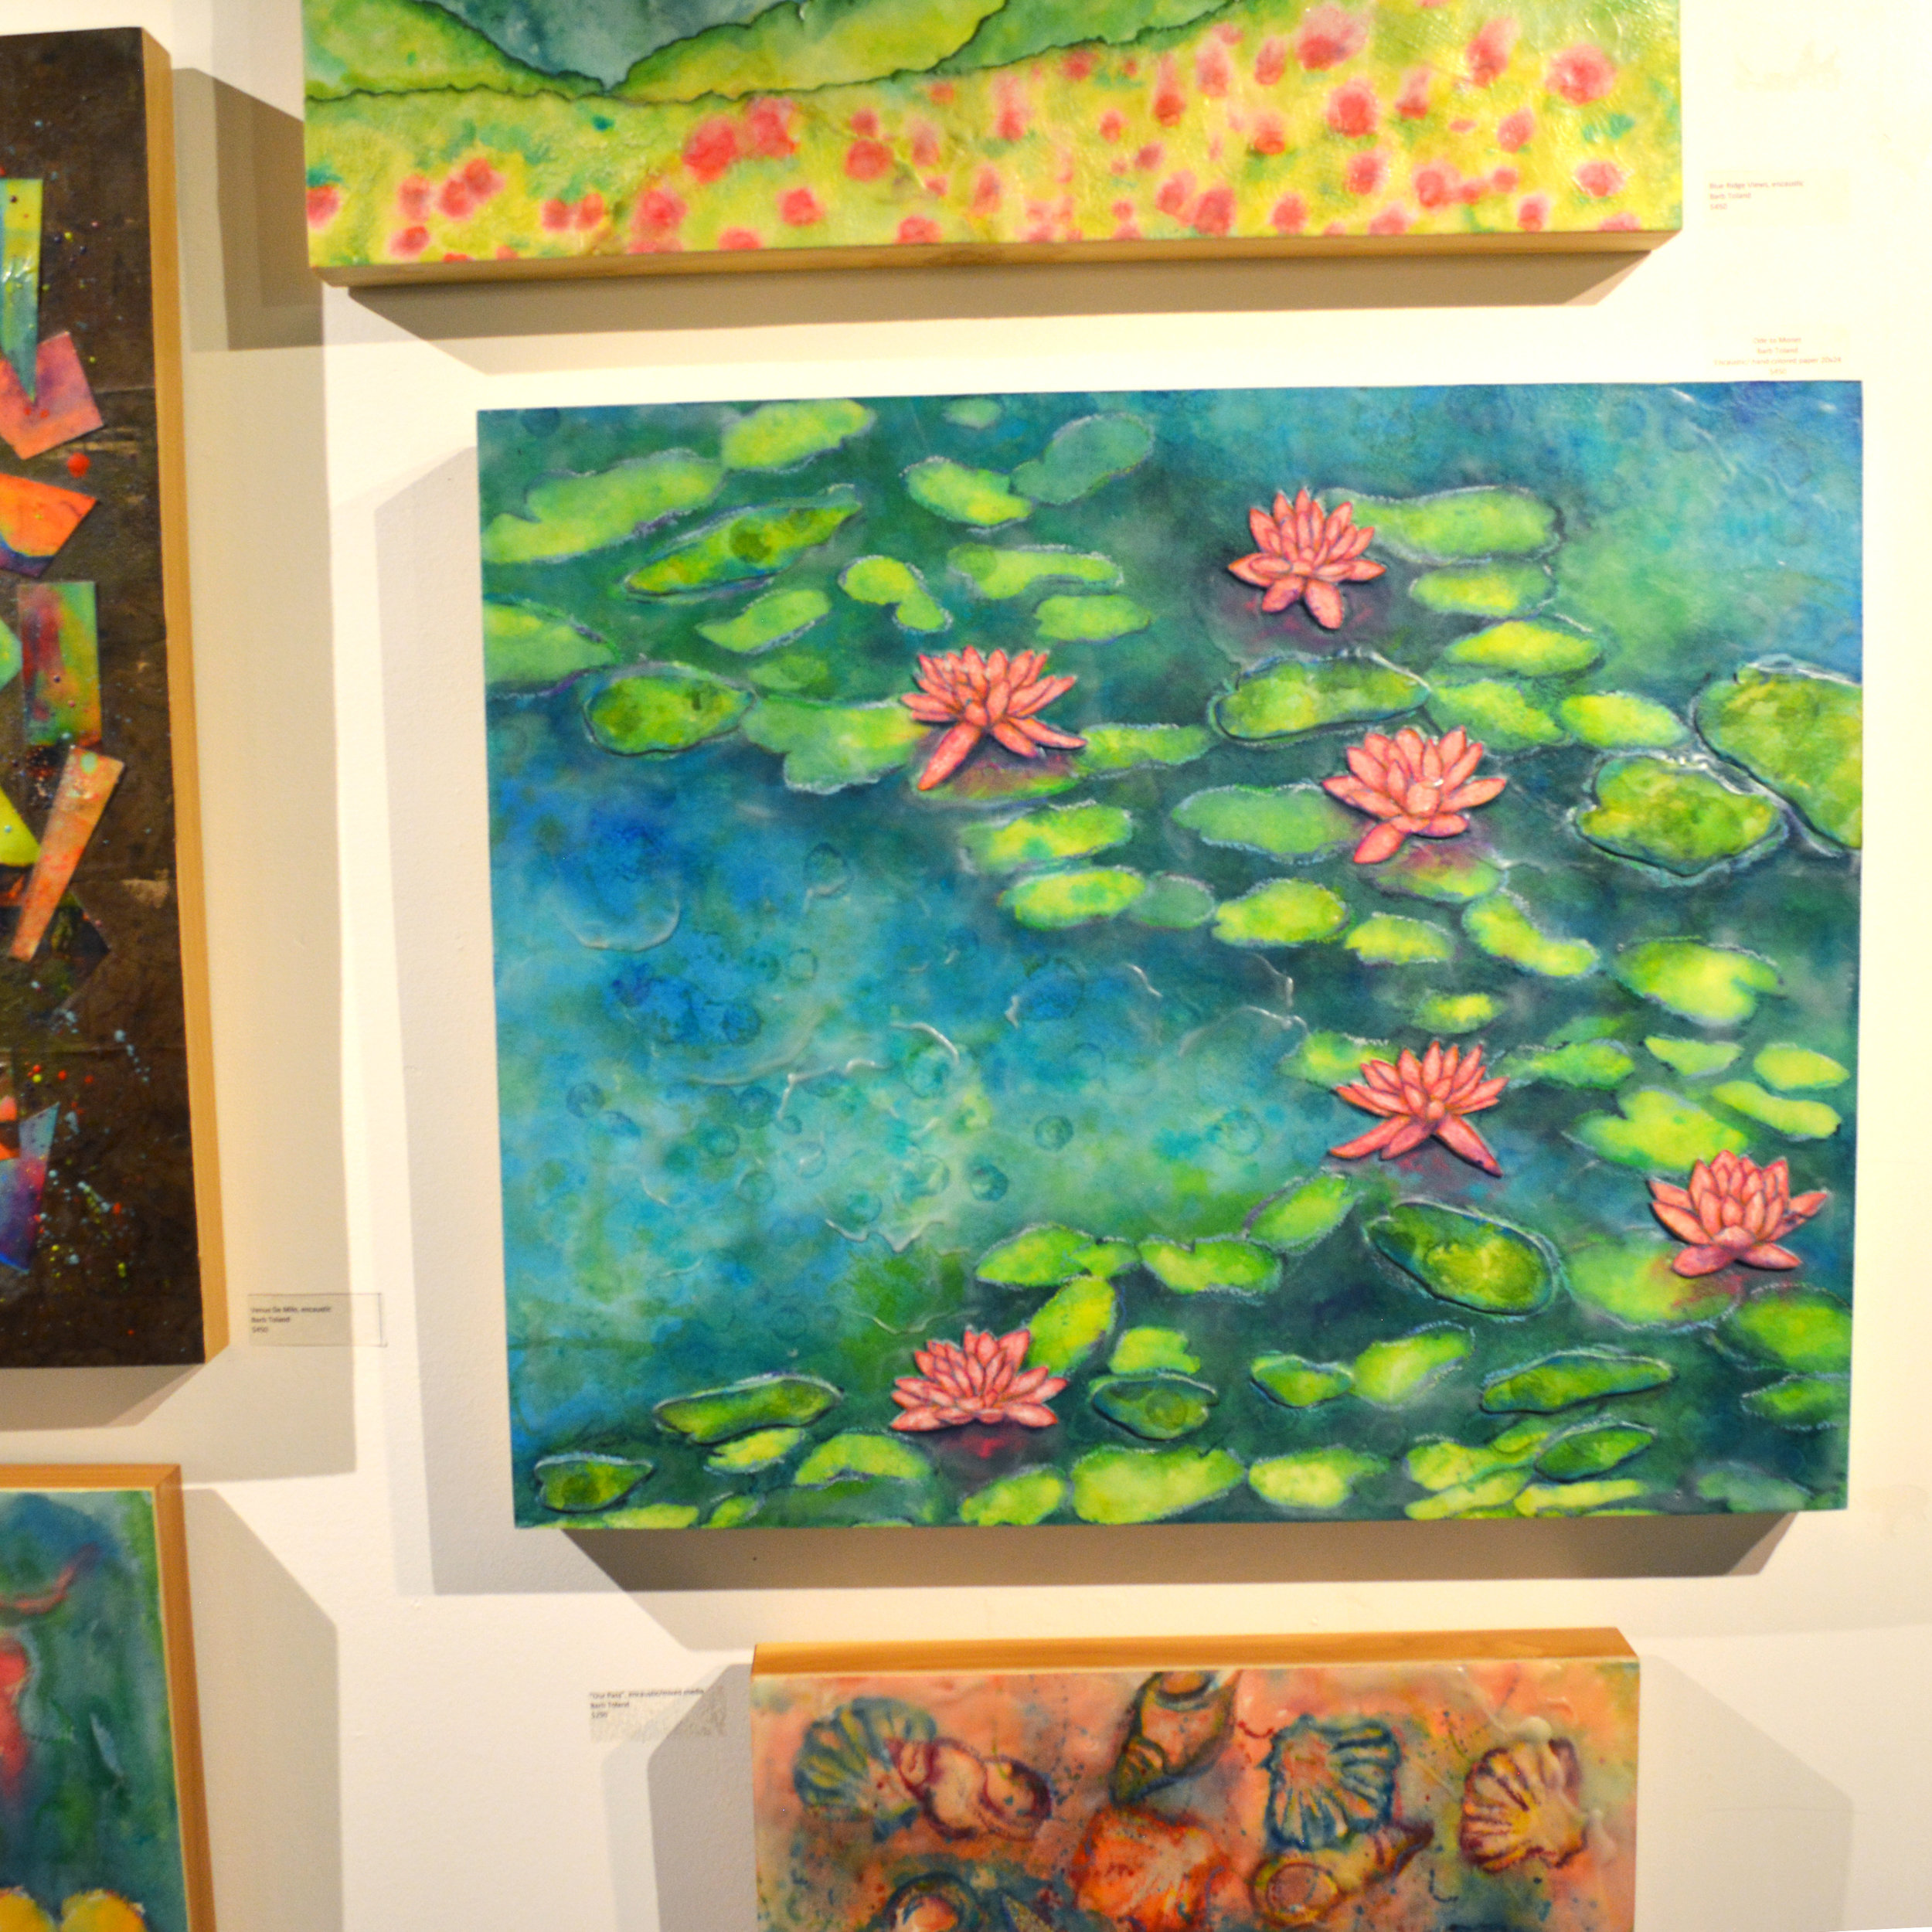 Barb Toland - Encaustic on wood with work featuring calming subjects.